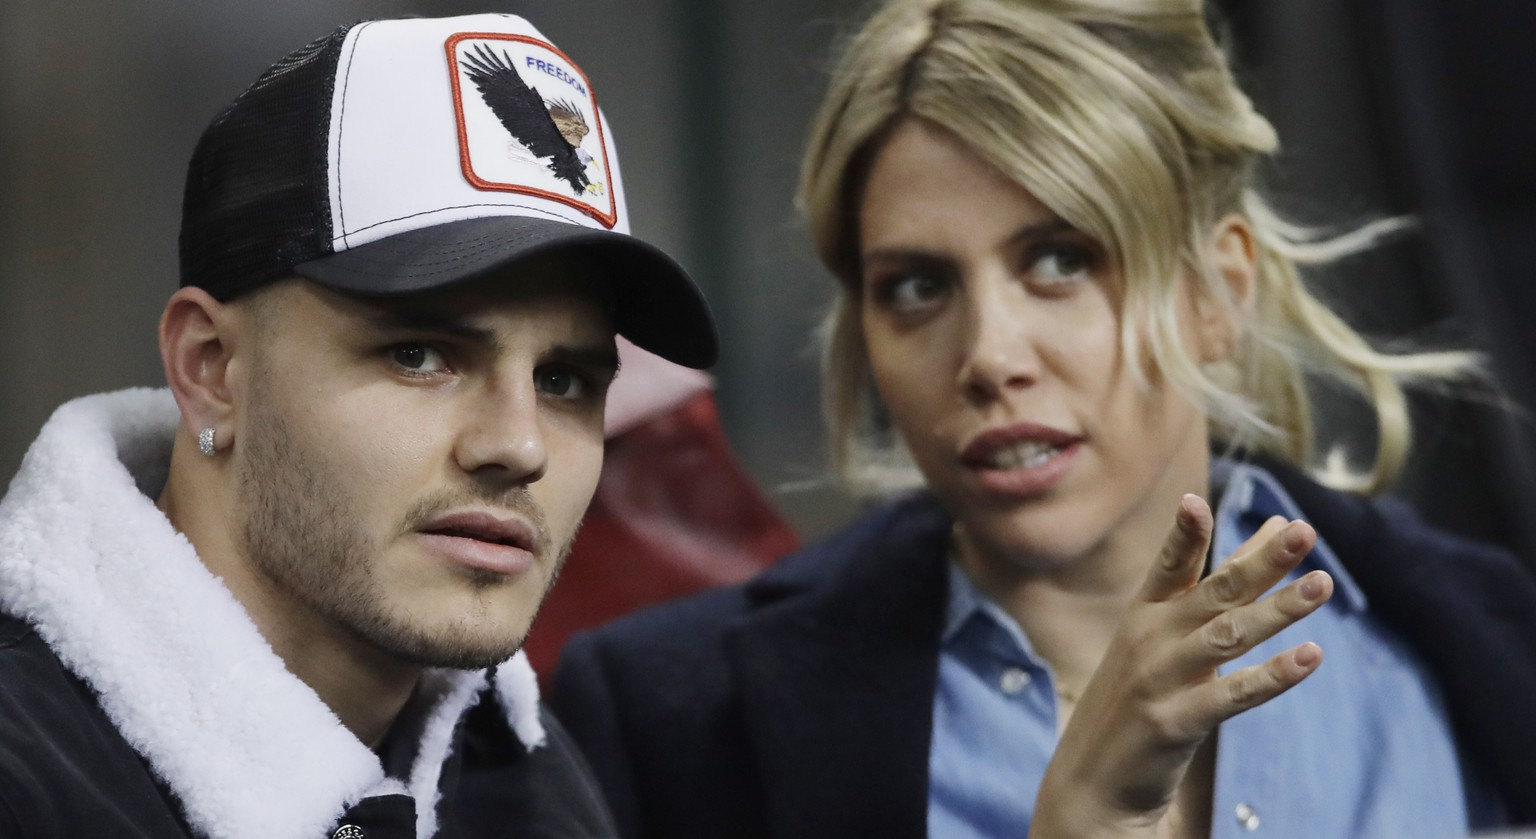 Inter Milan's Mauro Icardi is flanked by his wife Wanda Nara during the Europa League, round of 32, second leg soccer match between Inter Milan and SK Rapid Vienna, at the San Siro stadium in Milan, Italy, Thursday, Feb. 21, 2019. (AP Photo/Luca Bruno)